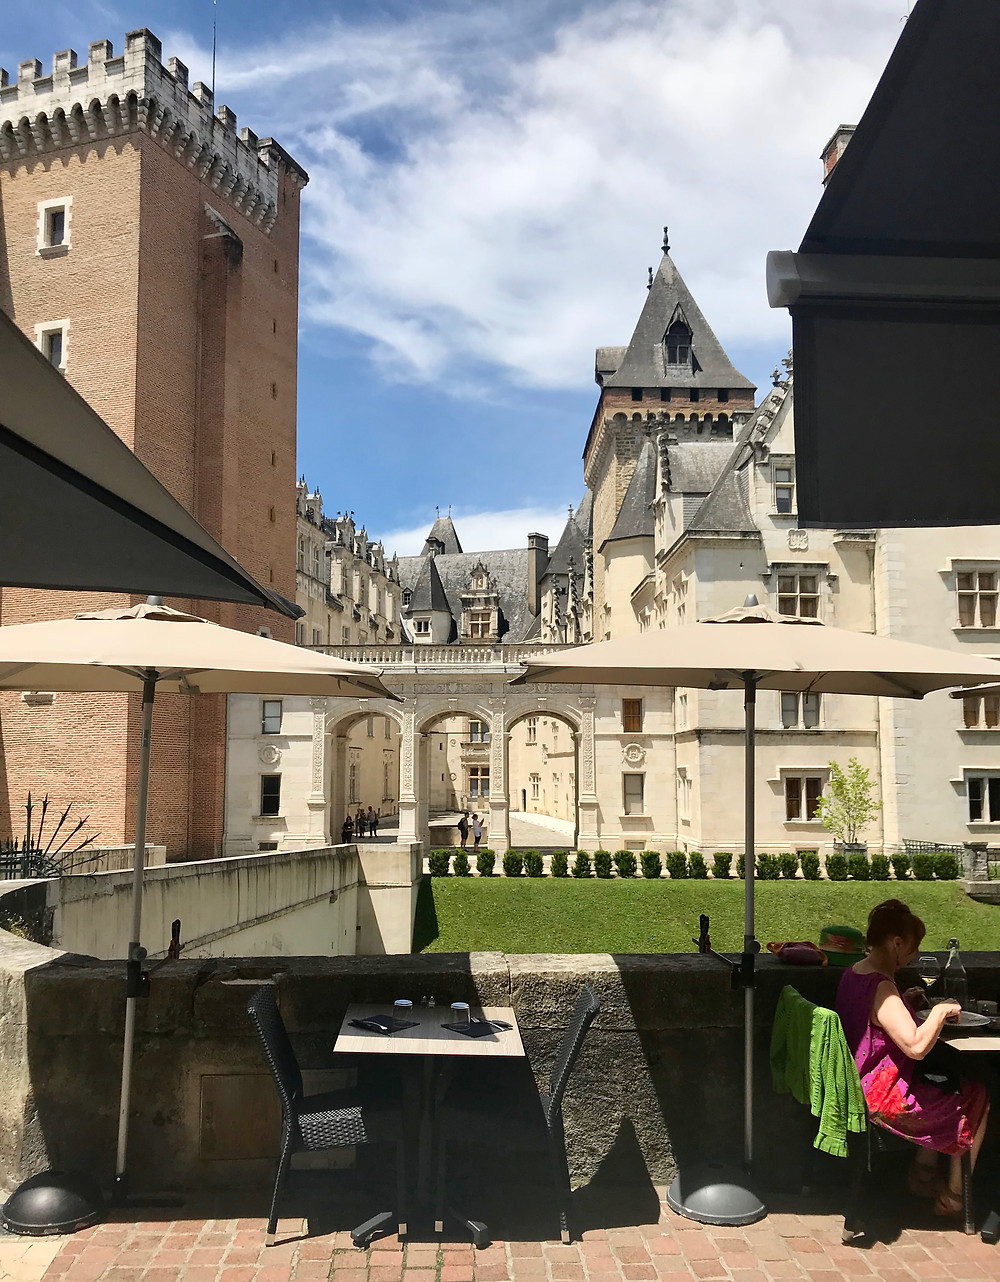 I lunched at Les Amoureux, right across from Pau Chateau